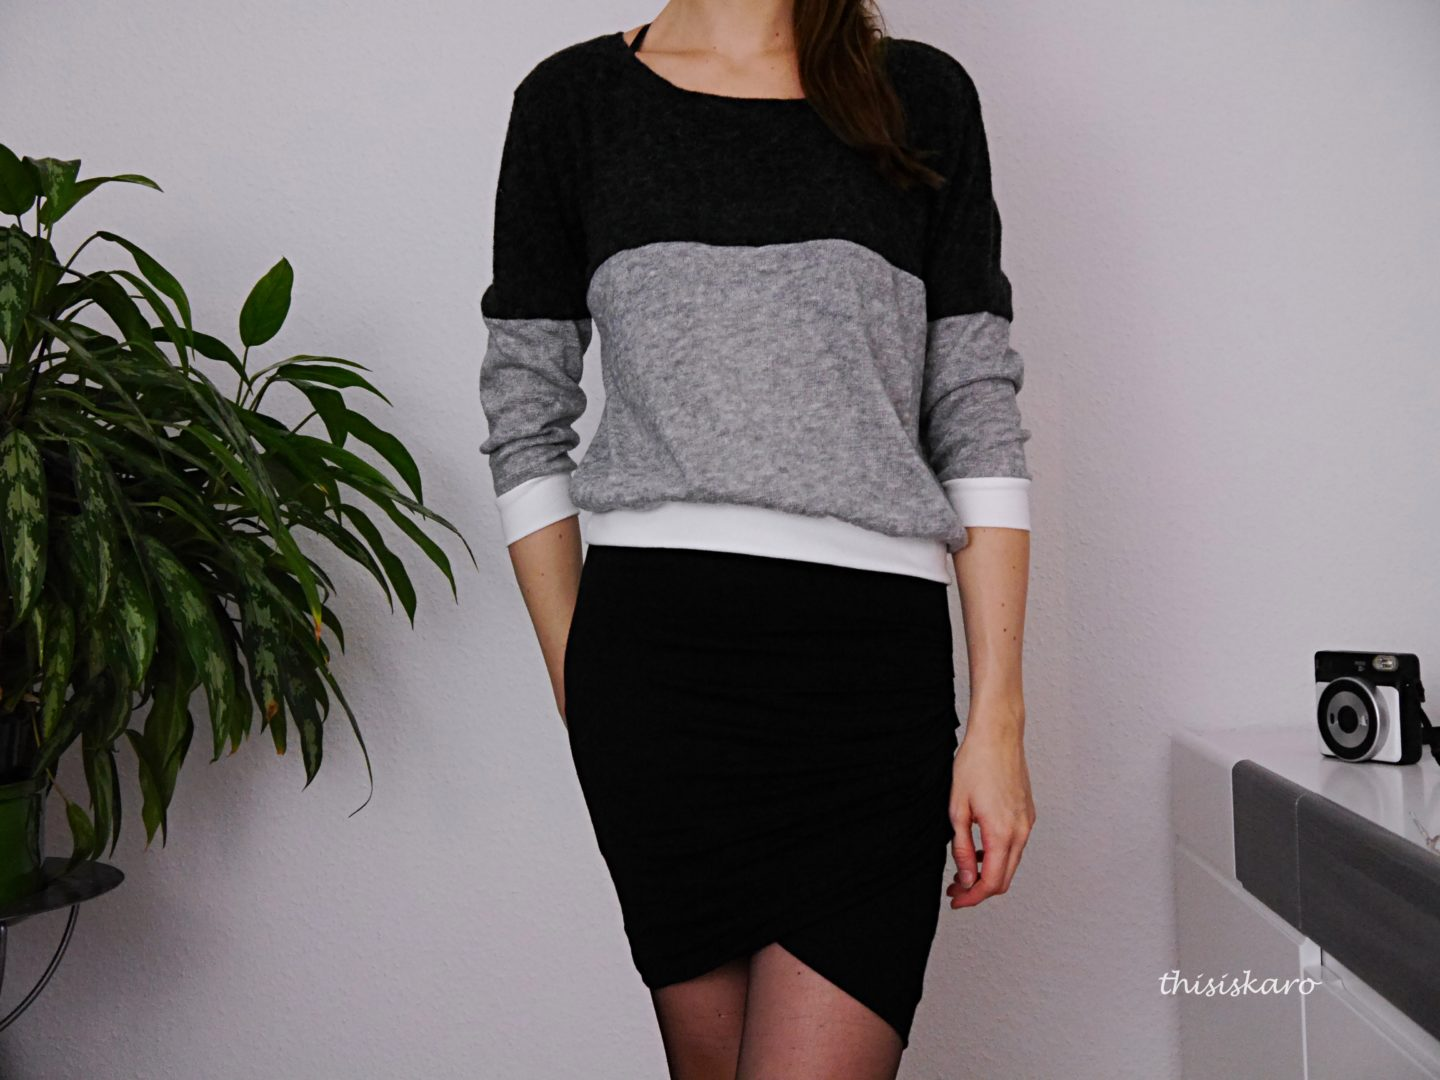 Herbst Winter Outfit Ideen Fashion Outfit Thisiskaro